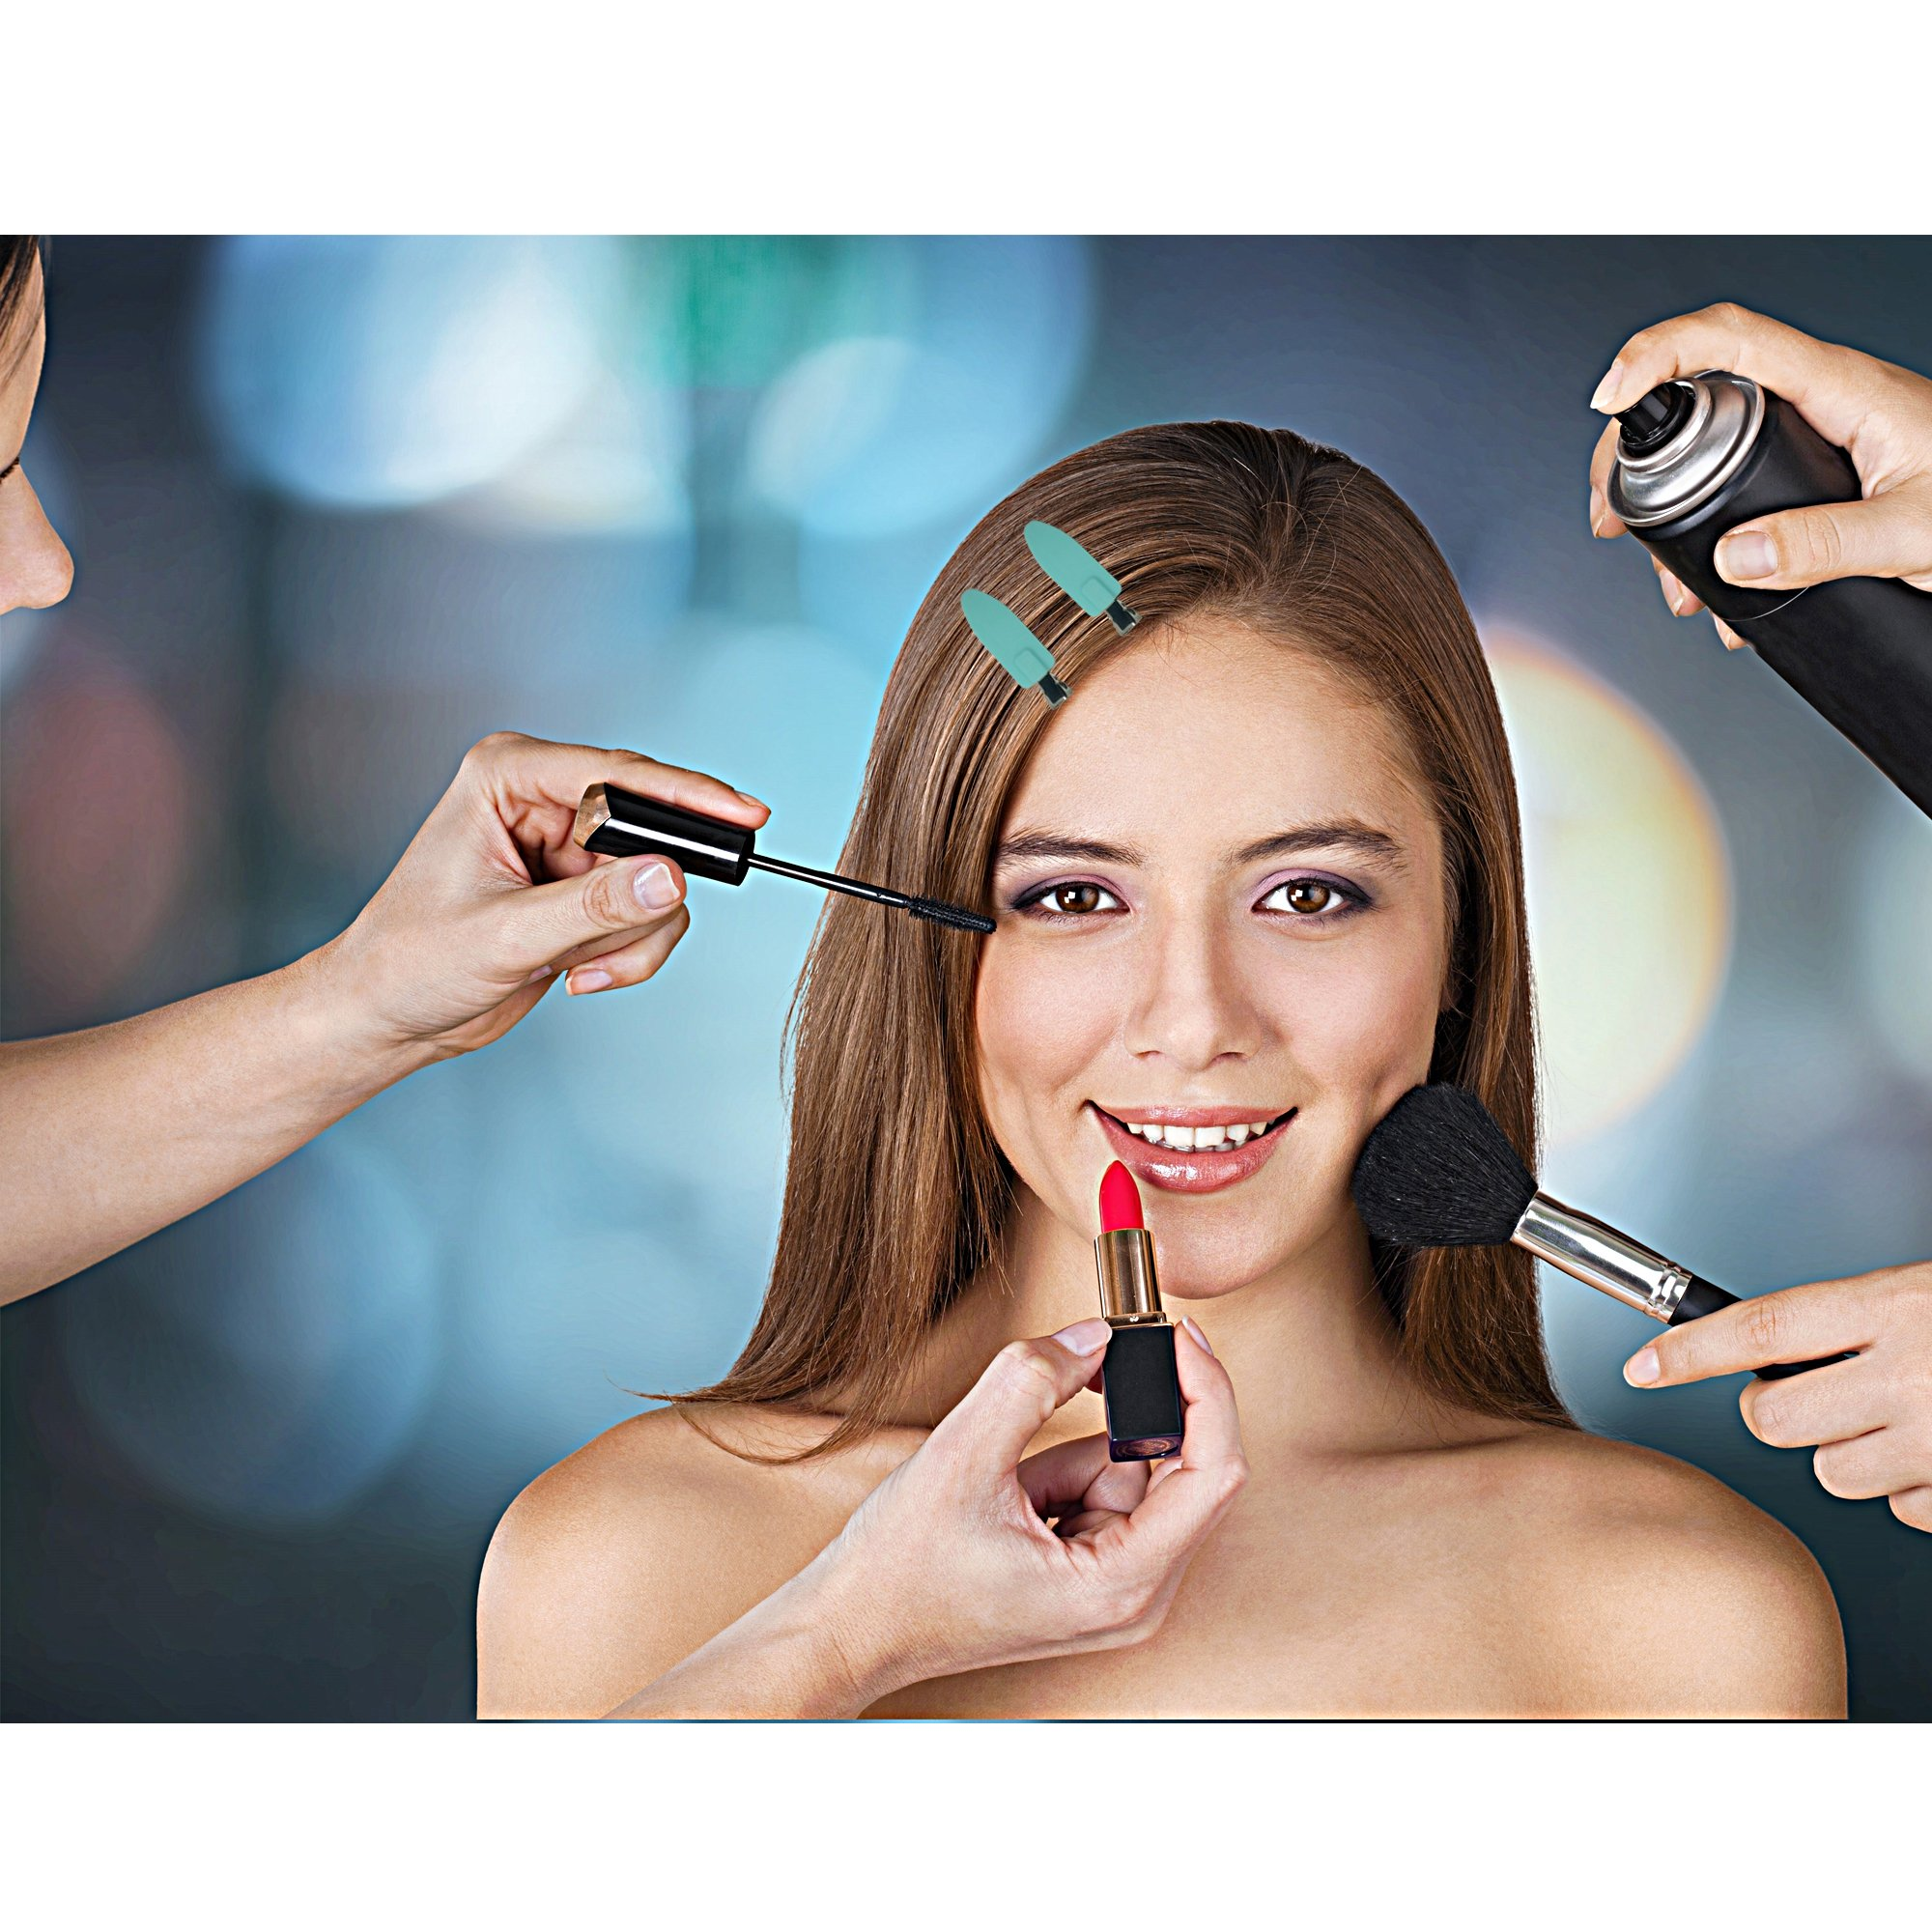 No Crease Hair Clips by A&D Innovation-Set of 6 Rubber No Bend Hair clips used by Professionals & Celebrity Stylists-Perfect for Makeup Application, Styling & Sectioning, will Not Crease or Dent Hair. by A&D Innovation (Image #6)